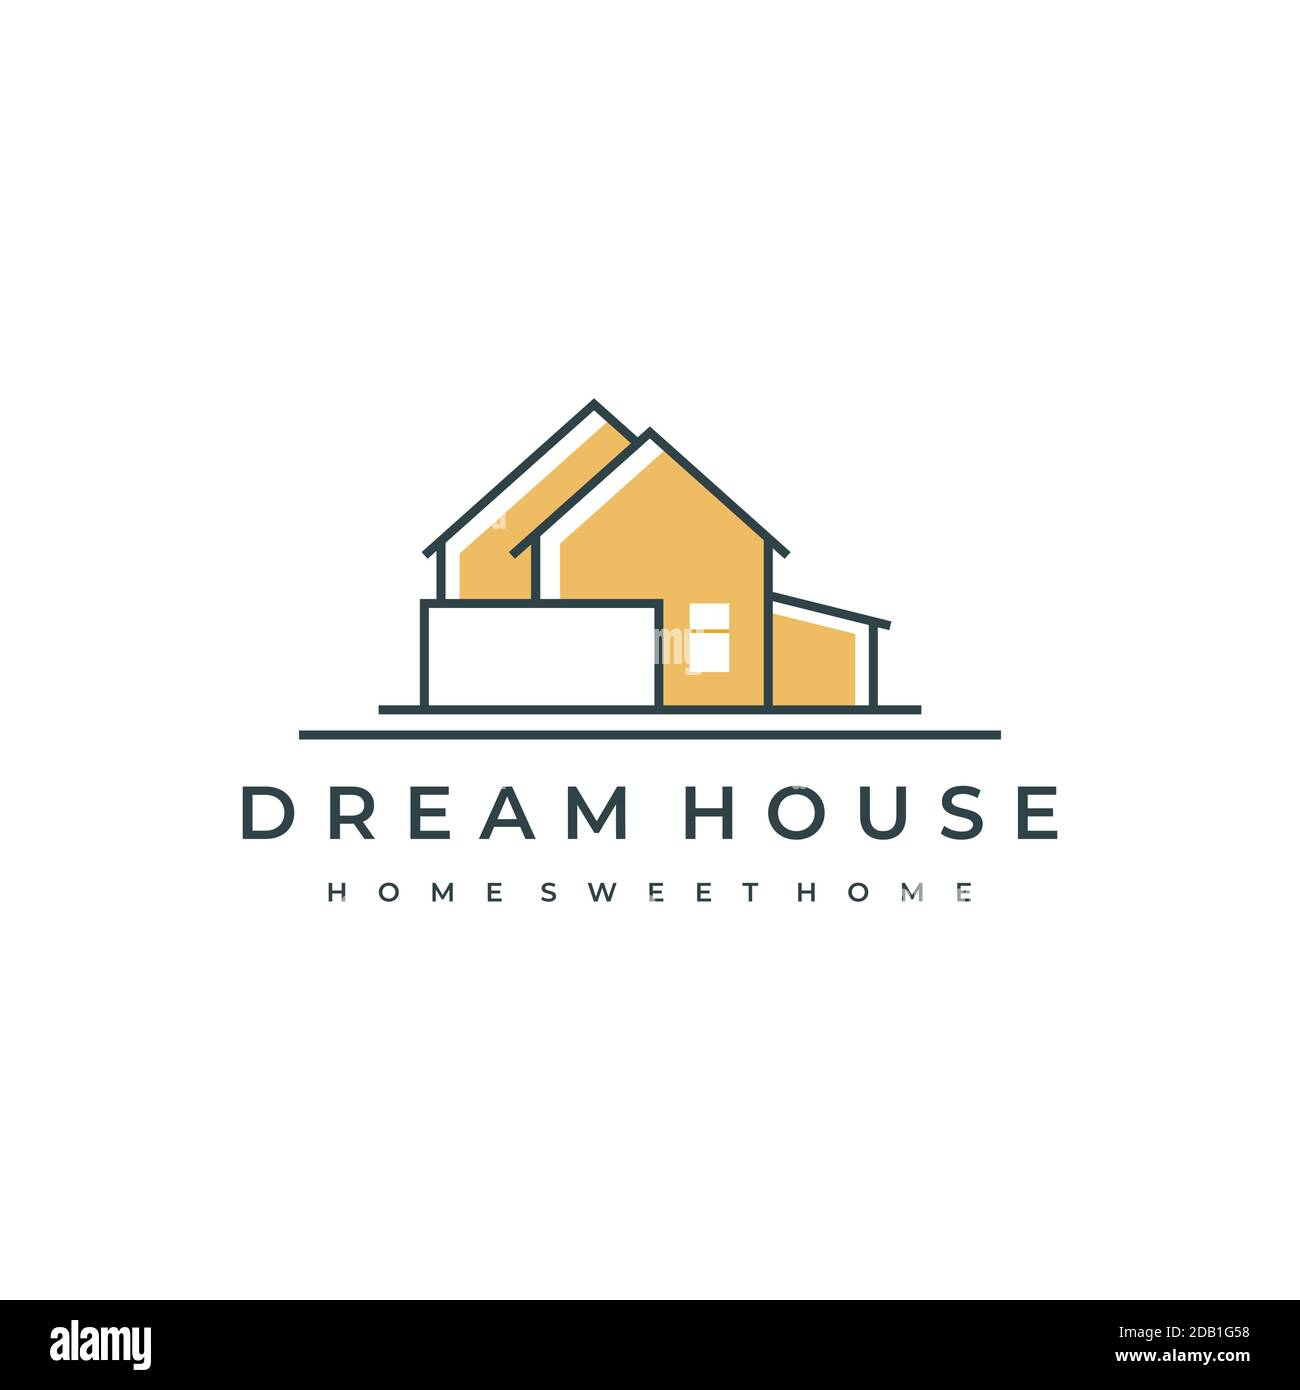 Abstract House For Construction Or Architecture Company Vector Emblem For Store With Home Decor Items Logo Design Inspiration Stock Vector Image Art Alamy